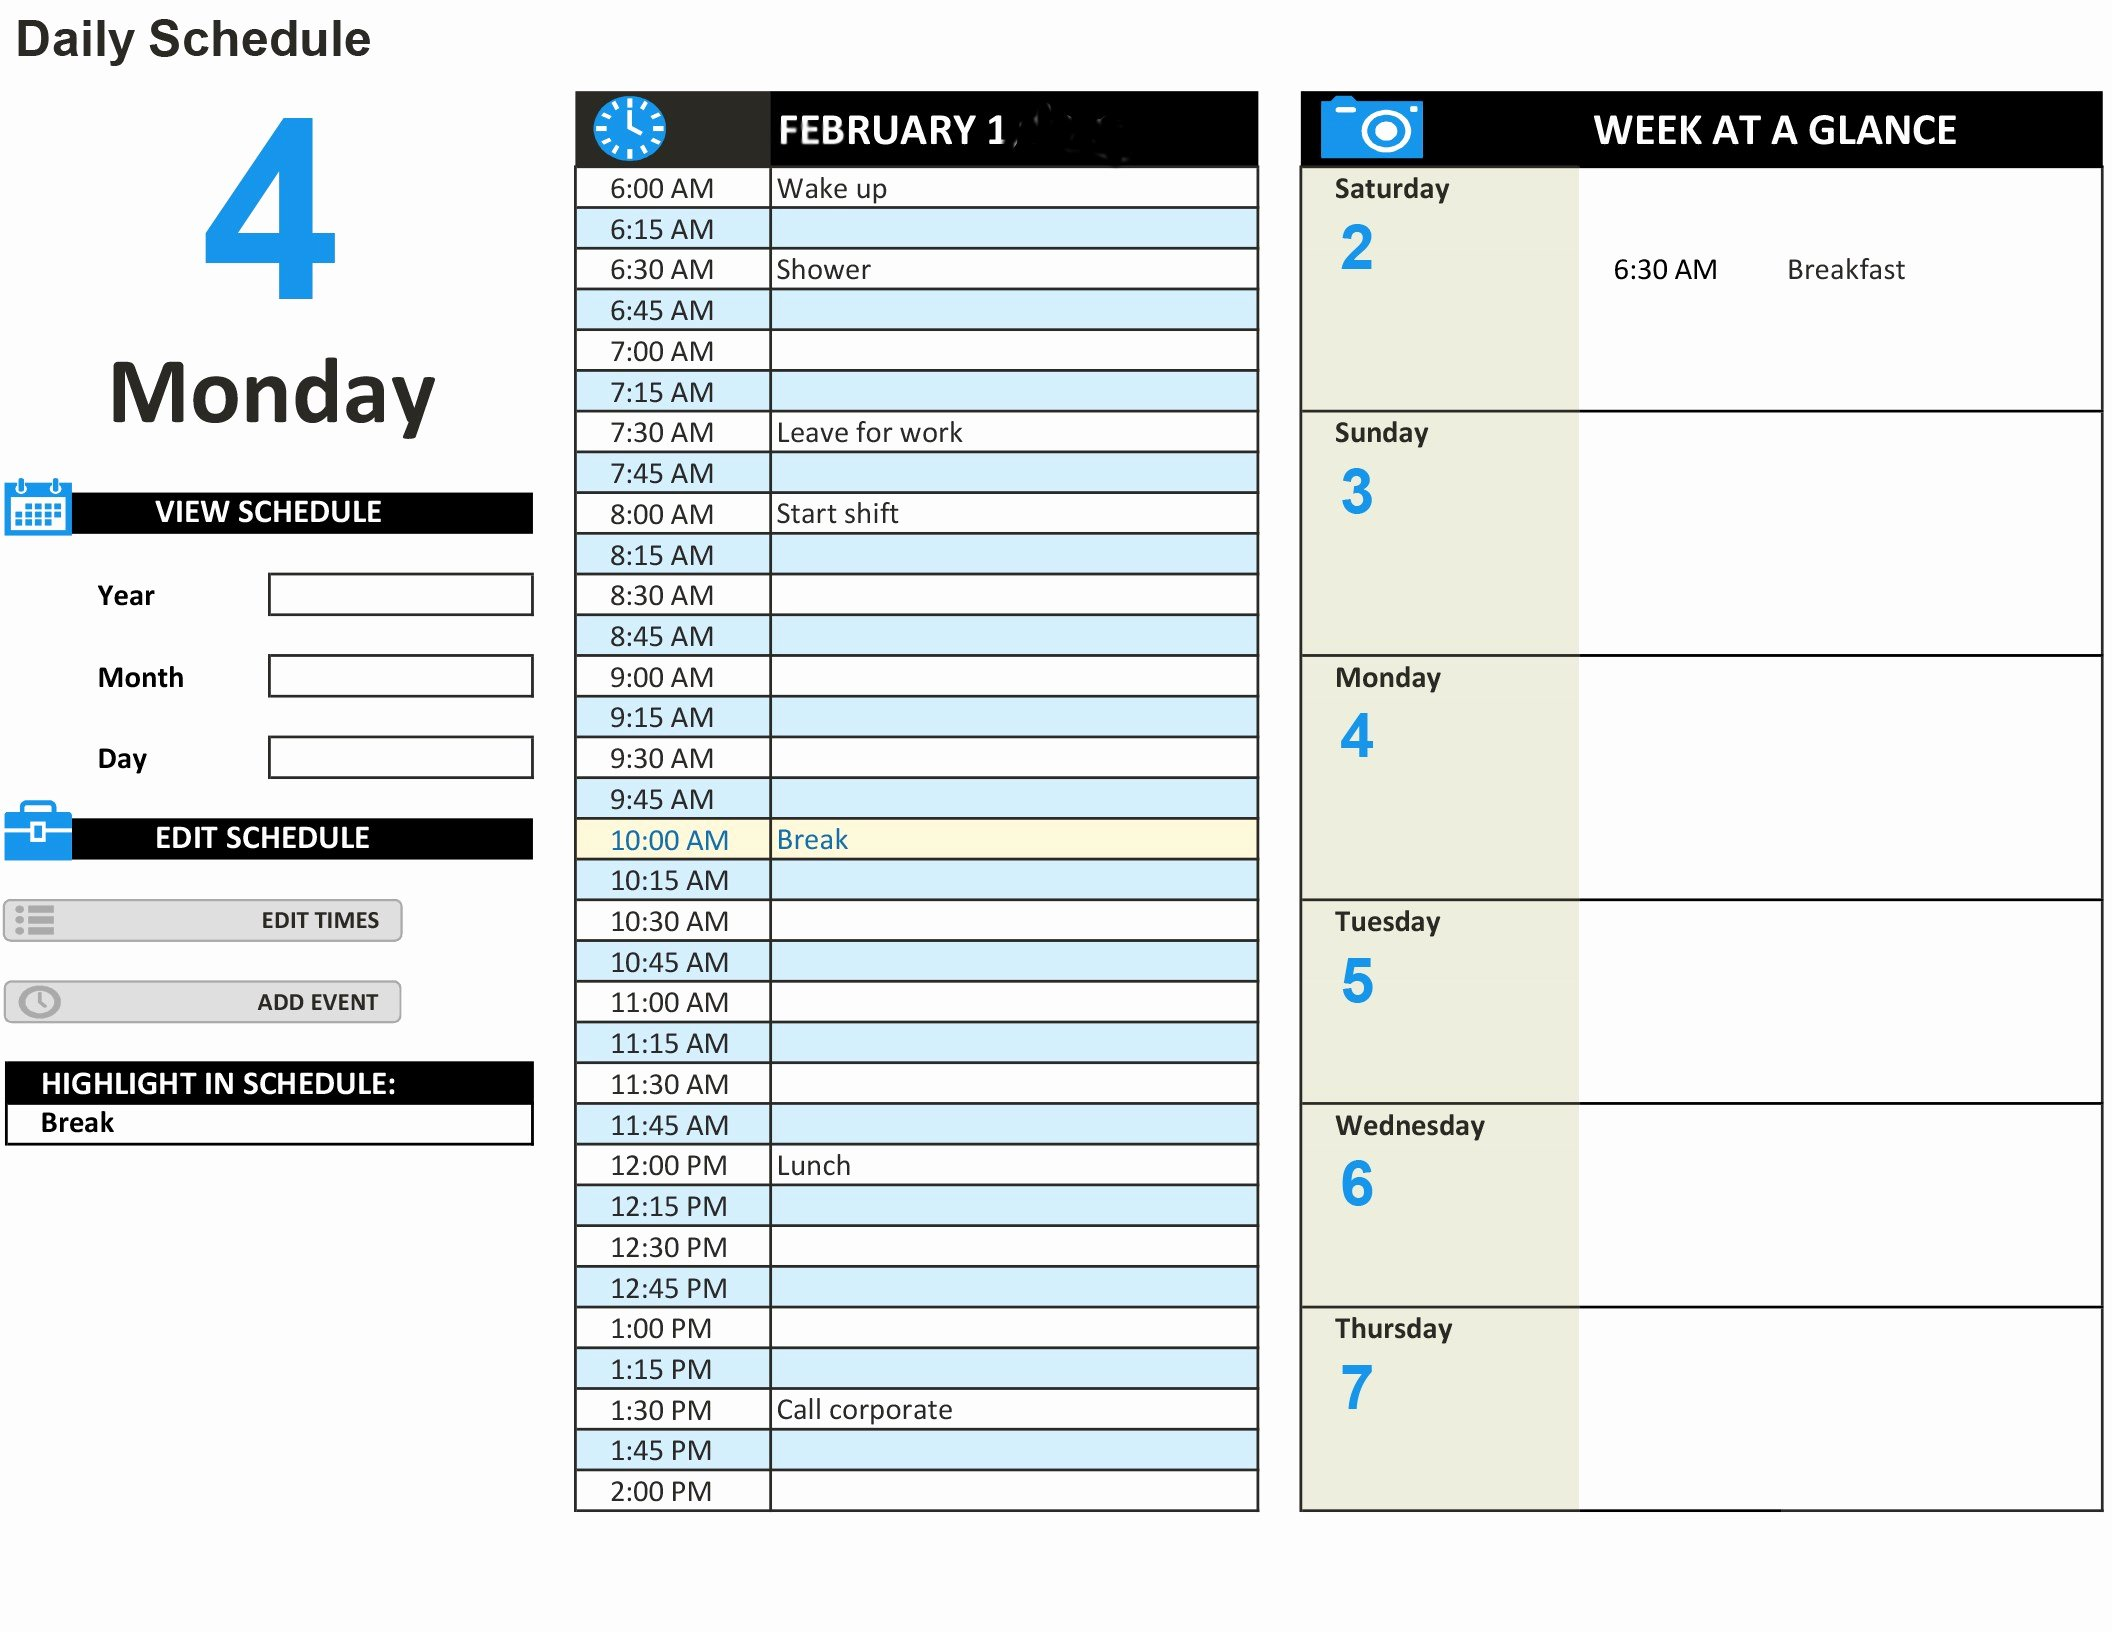 Daily Work Schedule Template Elegant Daily Work Schedule